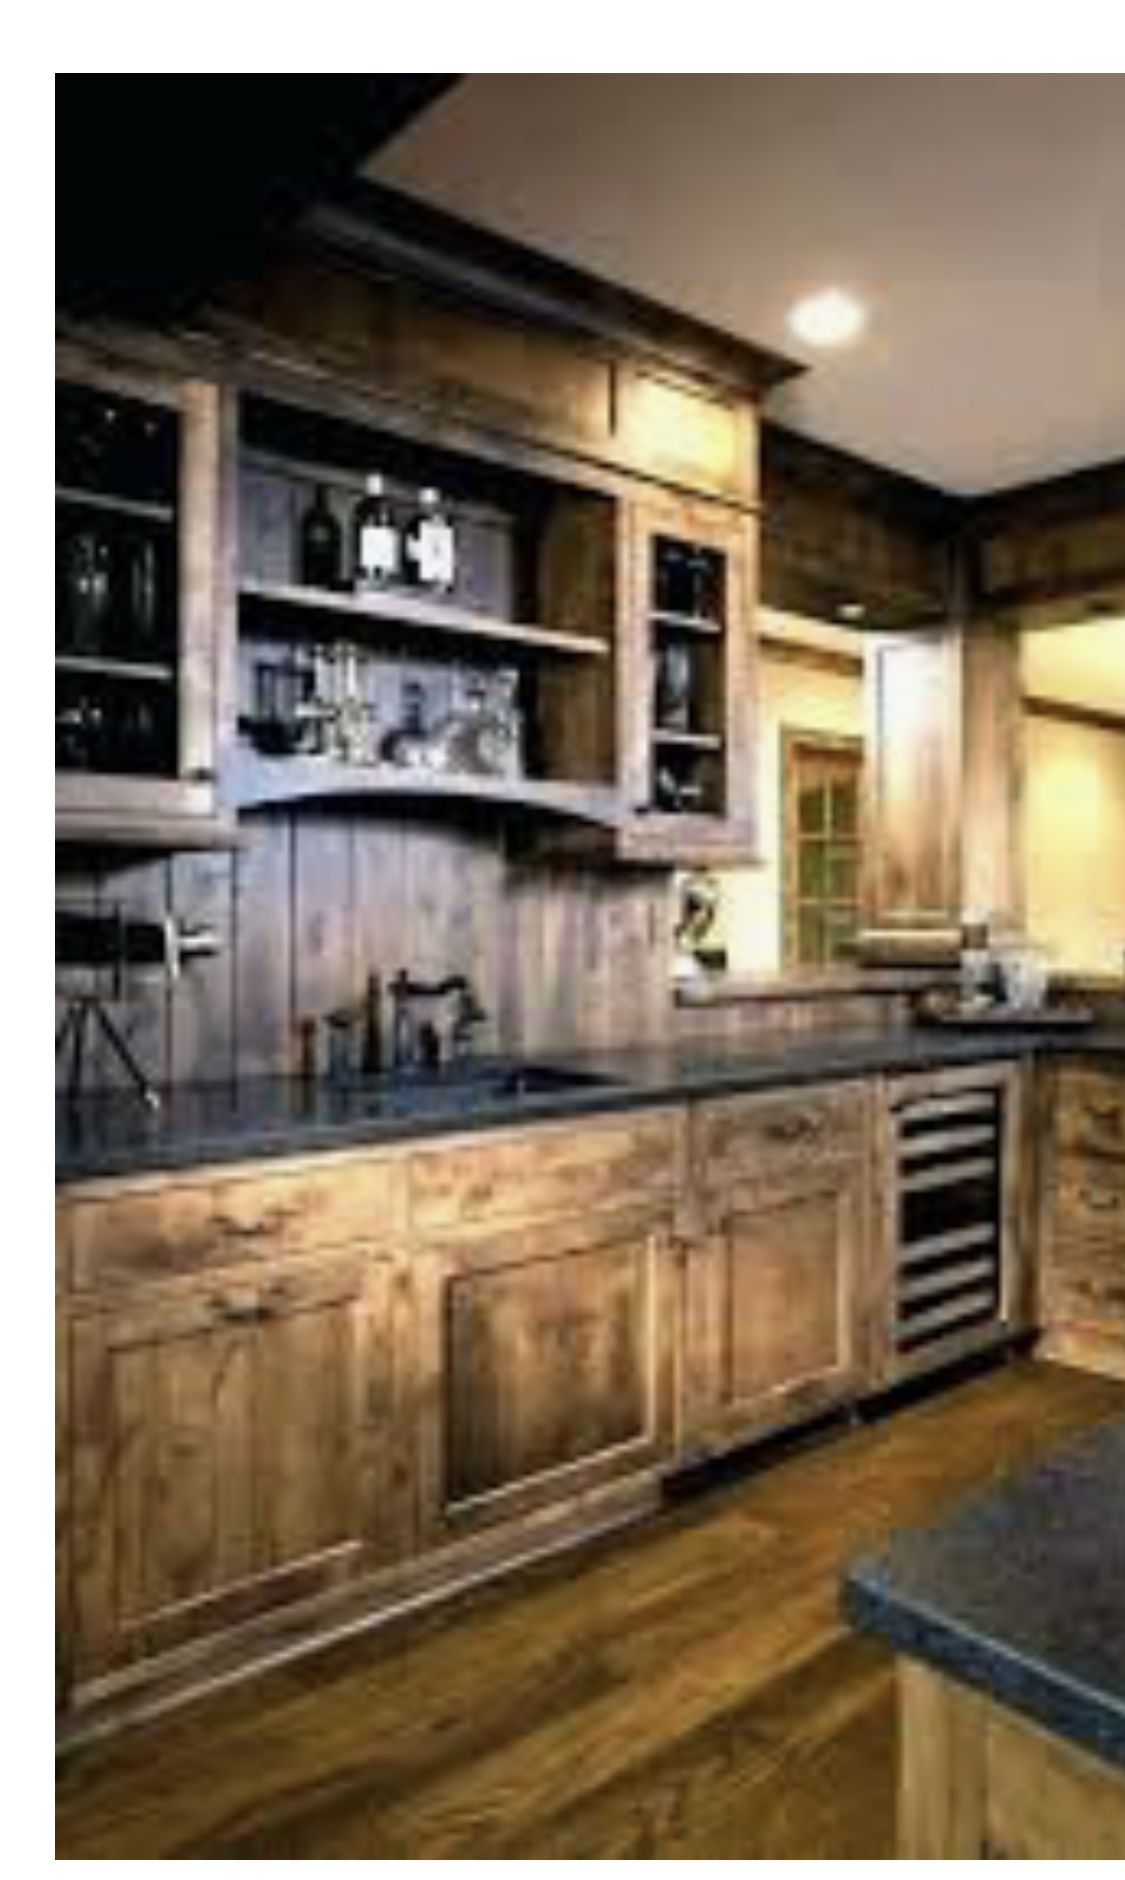 Love The Curved Arch Of The Shelf Rustic Kitchen Cabinets Kitchen Design Rustic Kitchen